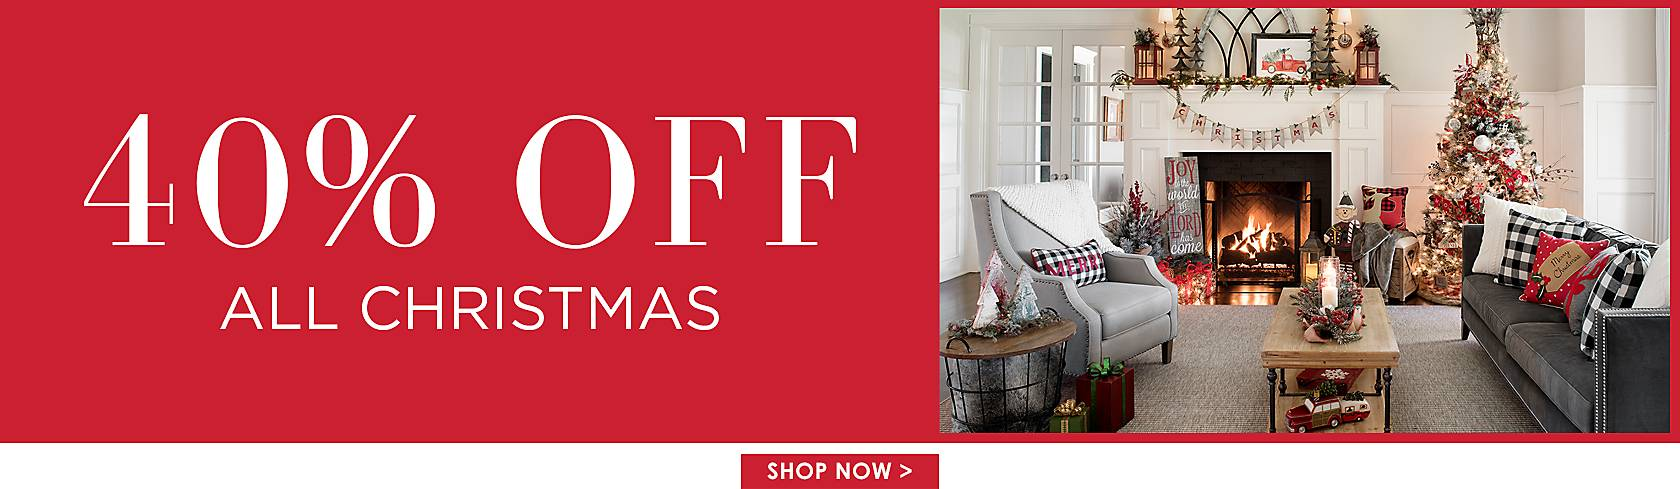 40  Off All Christmas  Hundreds of Items to Choose From    Shop Now. Home Decor  Wall Decor  Furniture  Unique Gifts   Kirklands